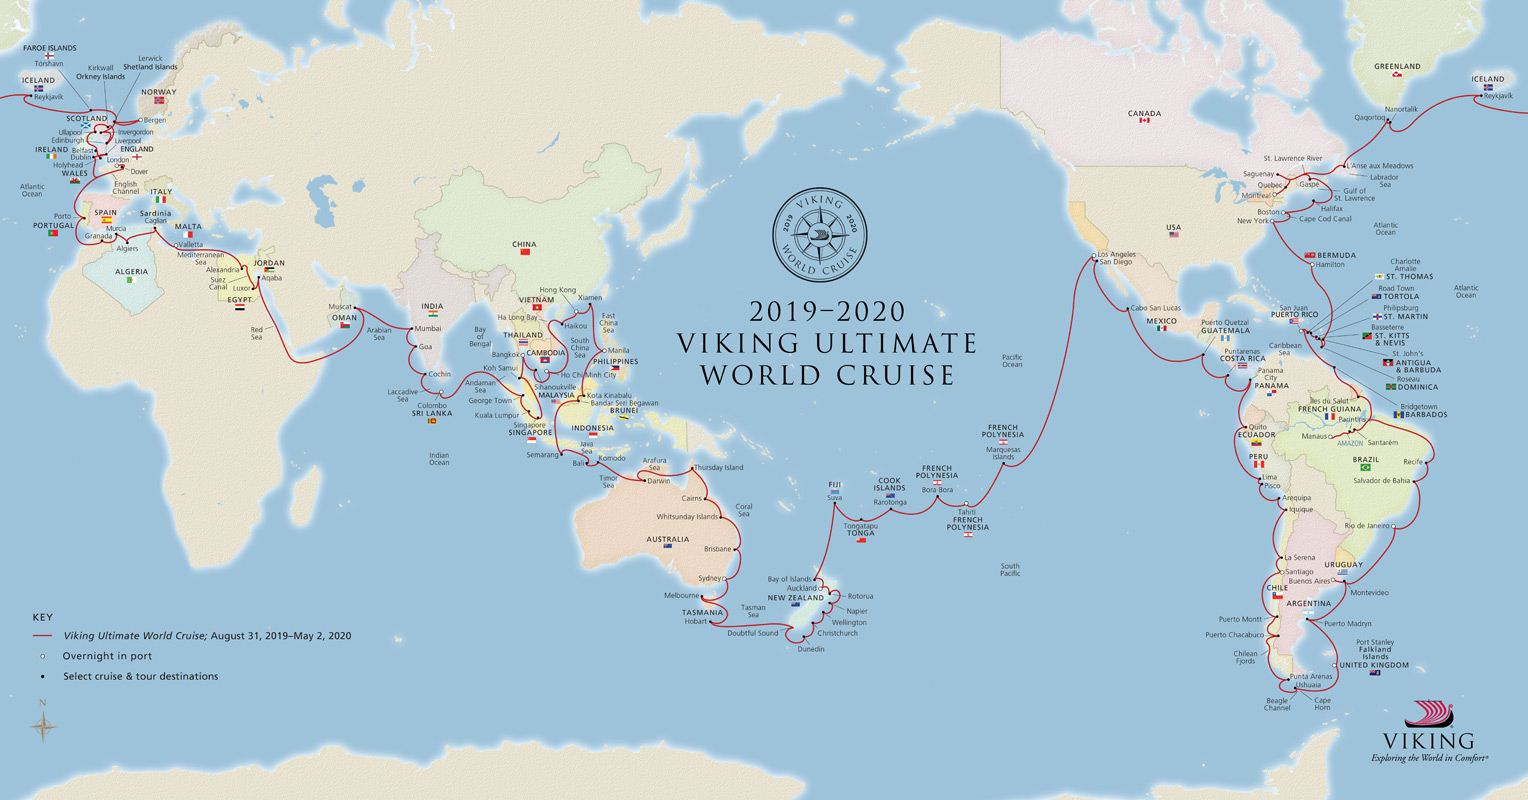 Viking Ultimate World Cruise - Cruise Map